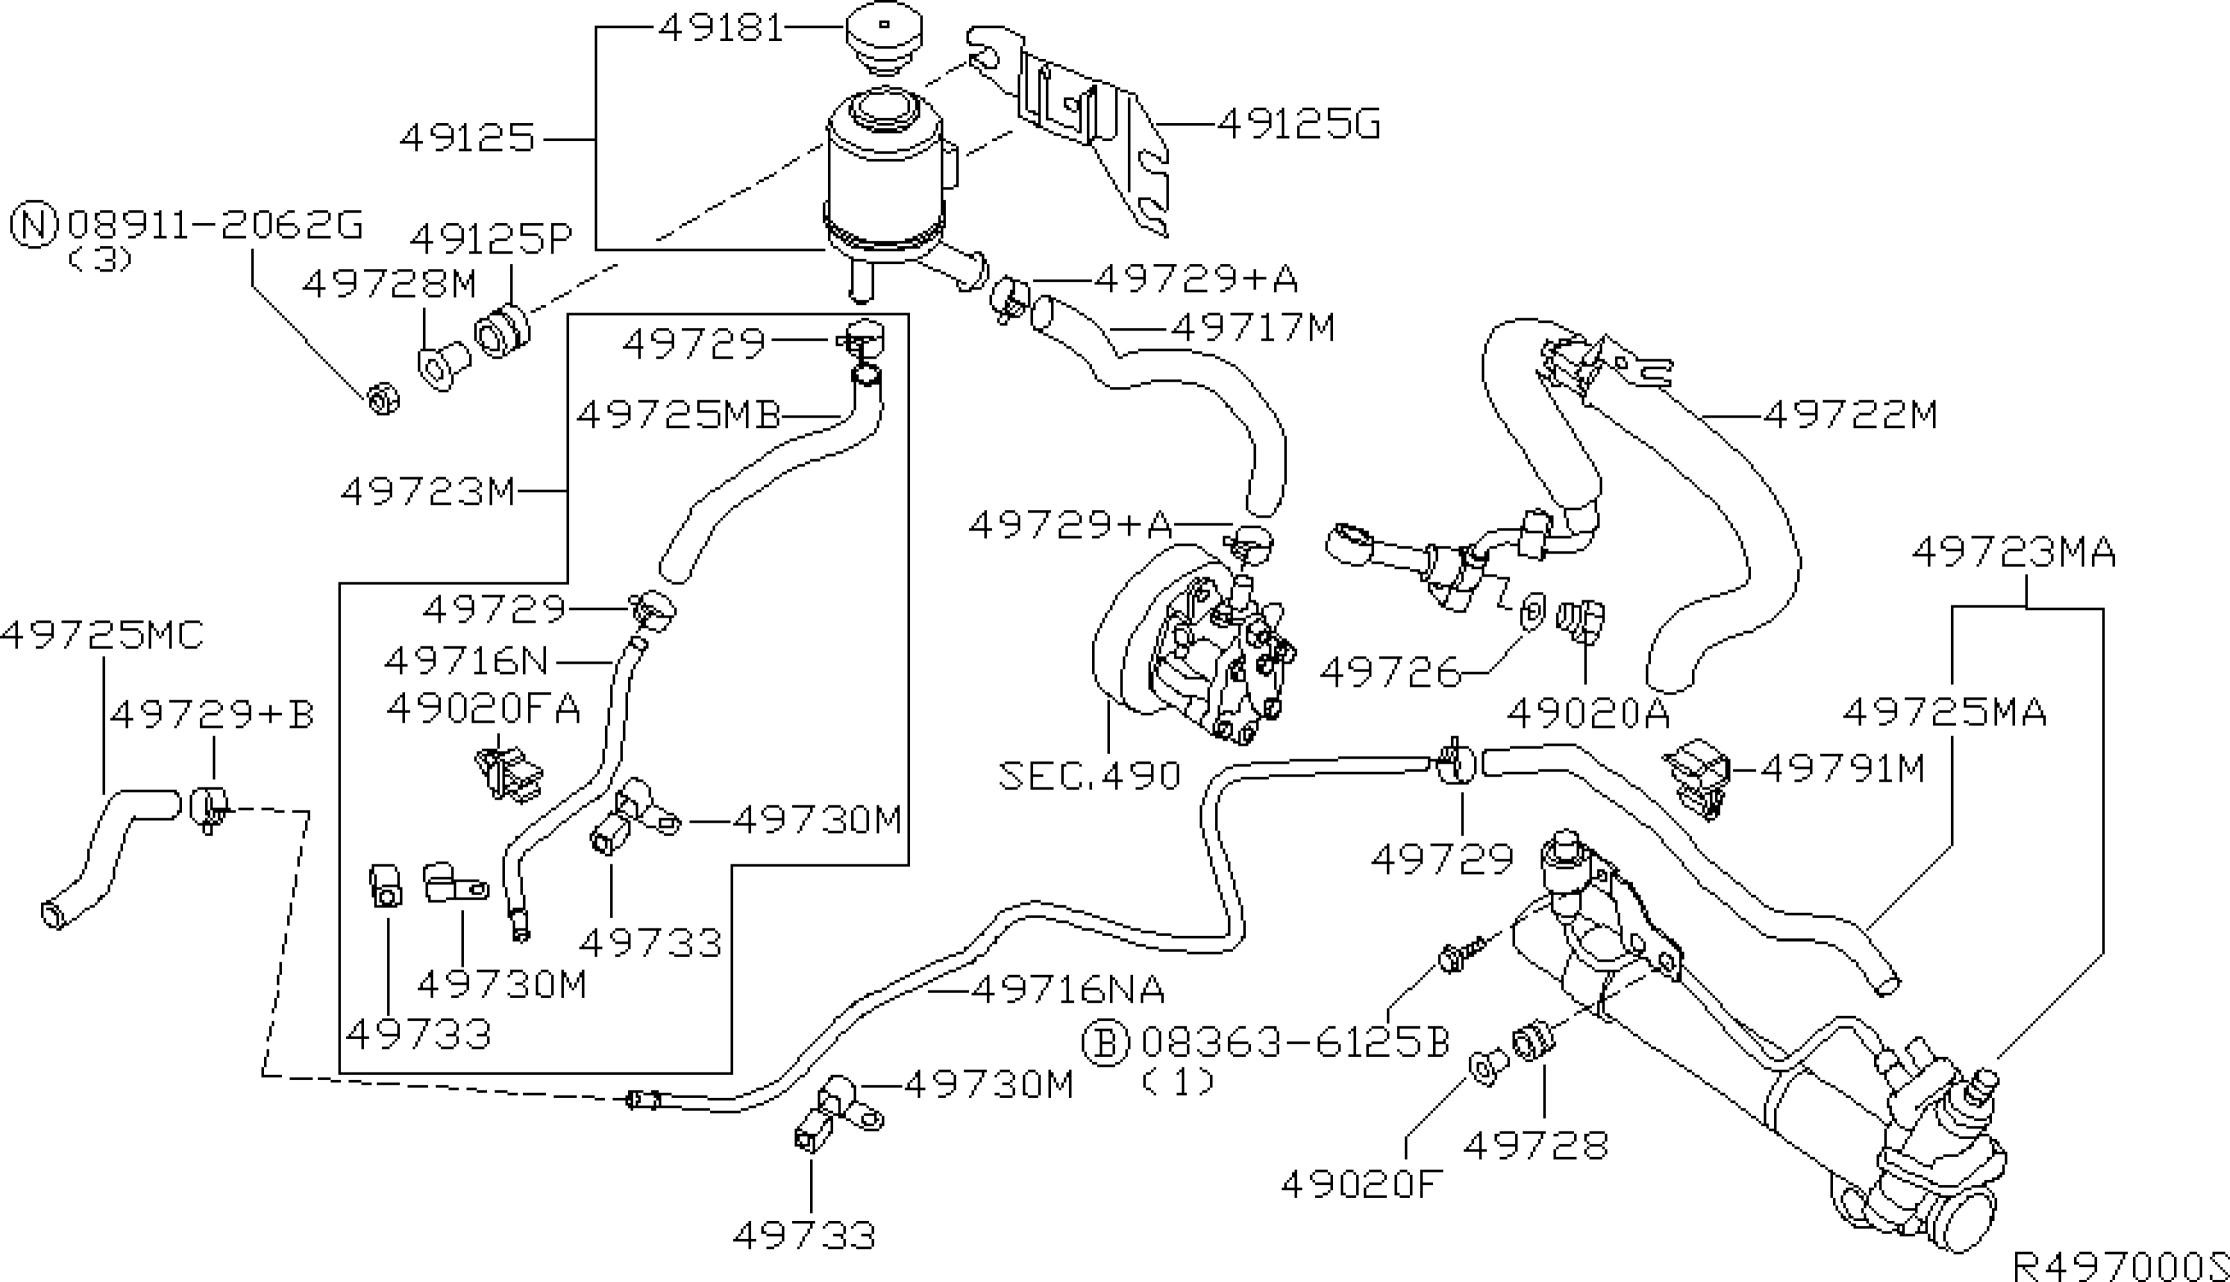 99 nissan altima wiring diagram 1995 acura integra radio engine 2002 xterra oem